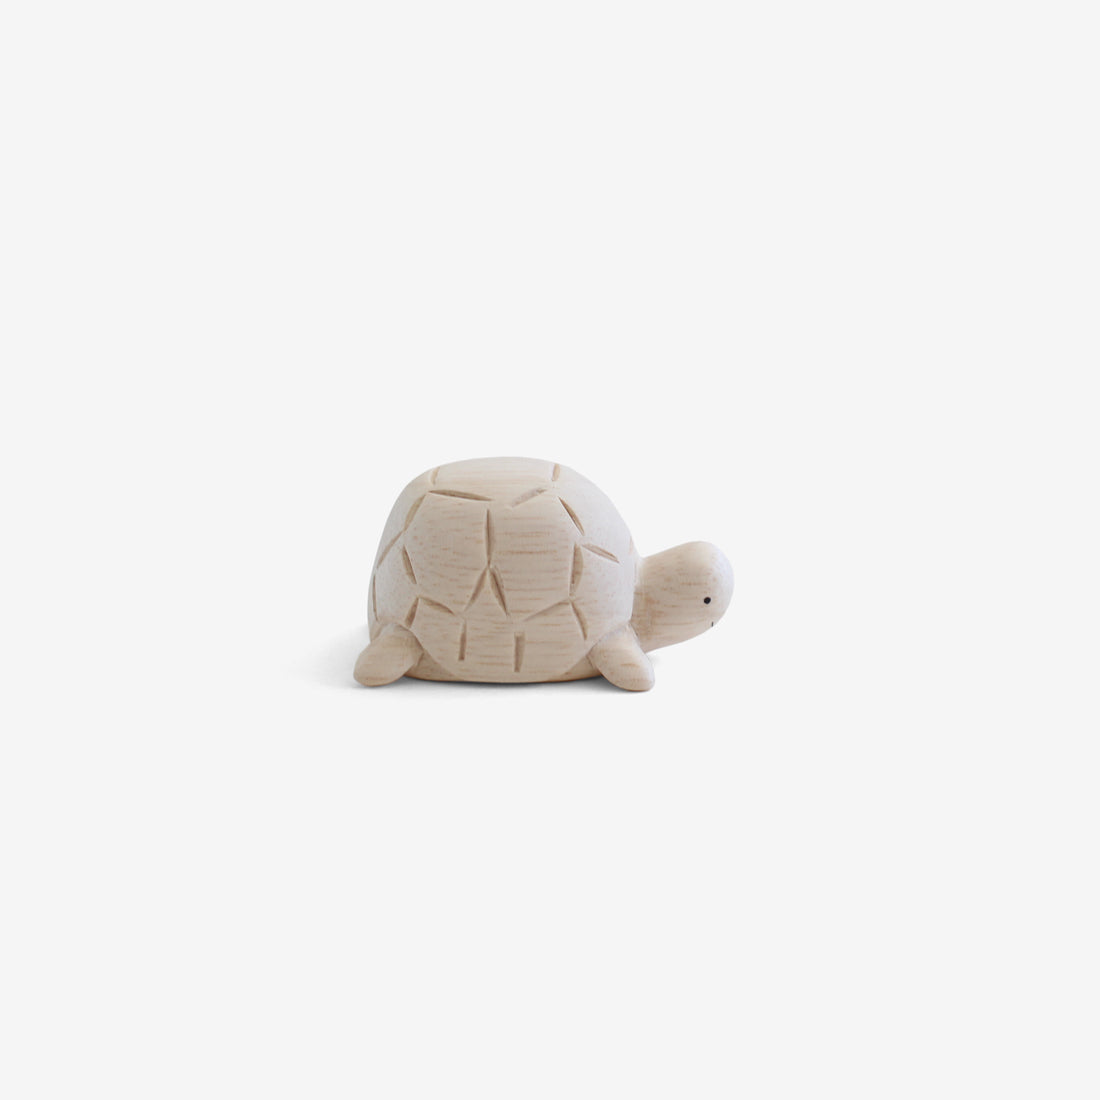 Polepole Miniature Wooden Animals - Turtle